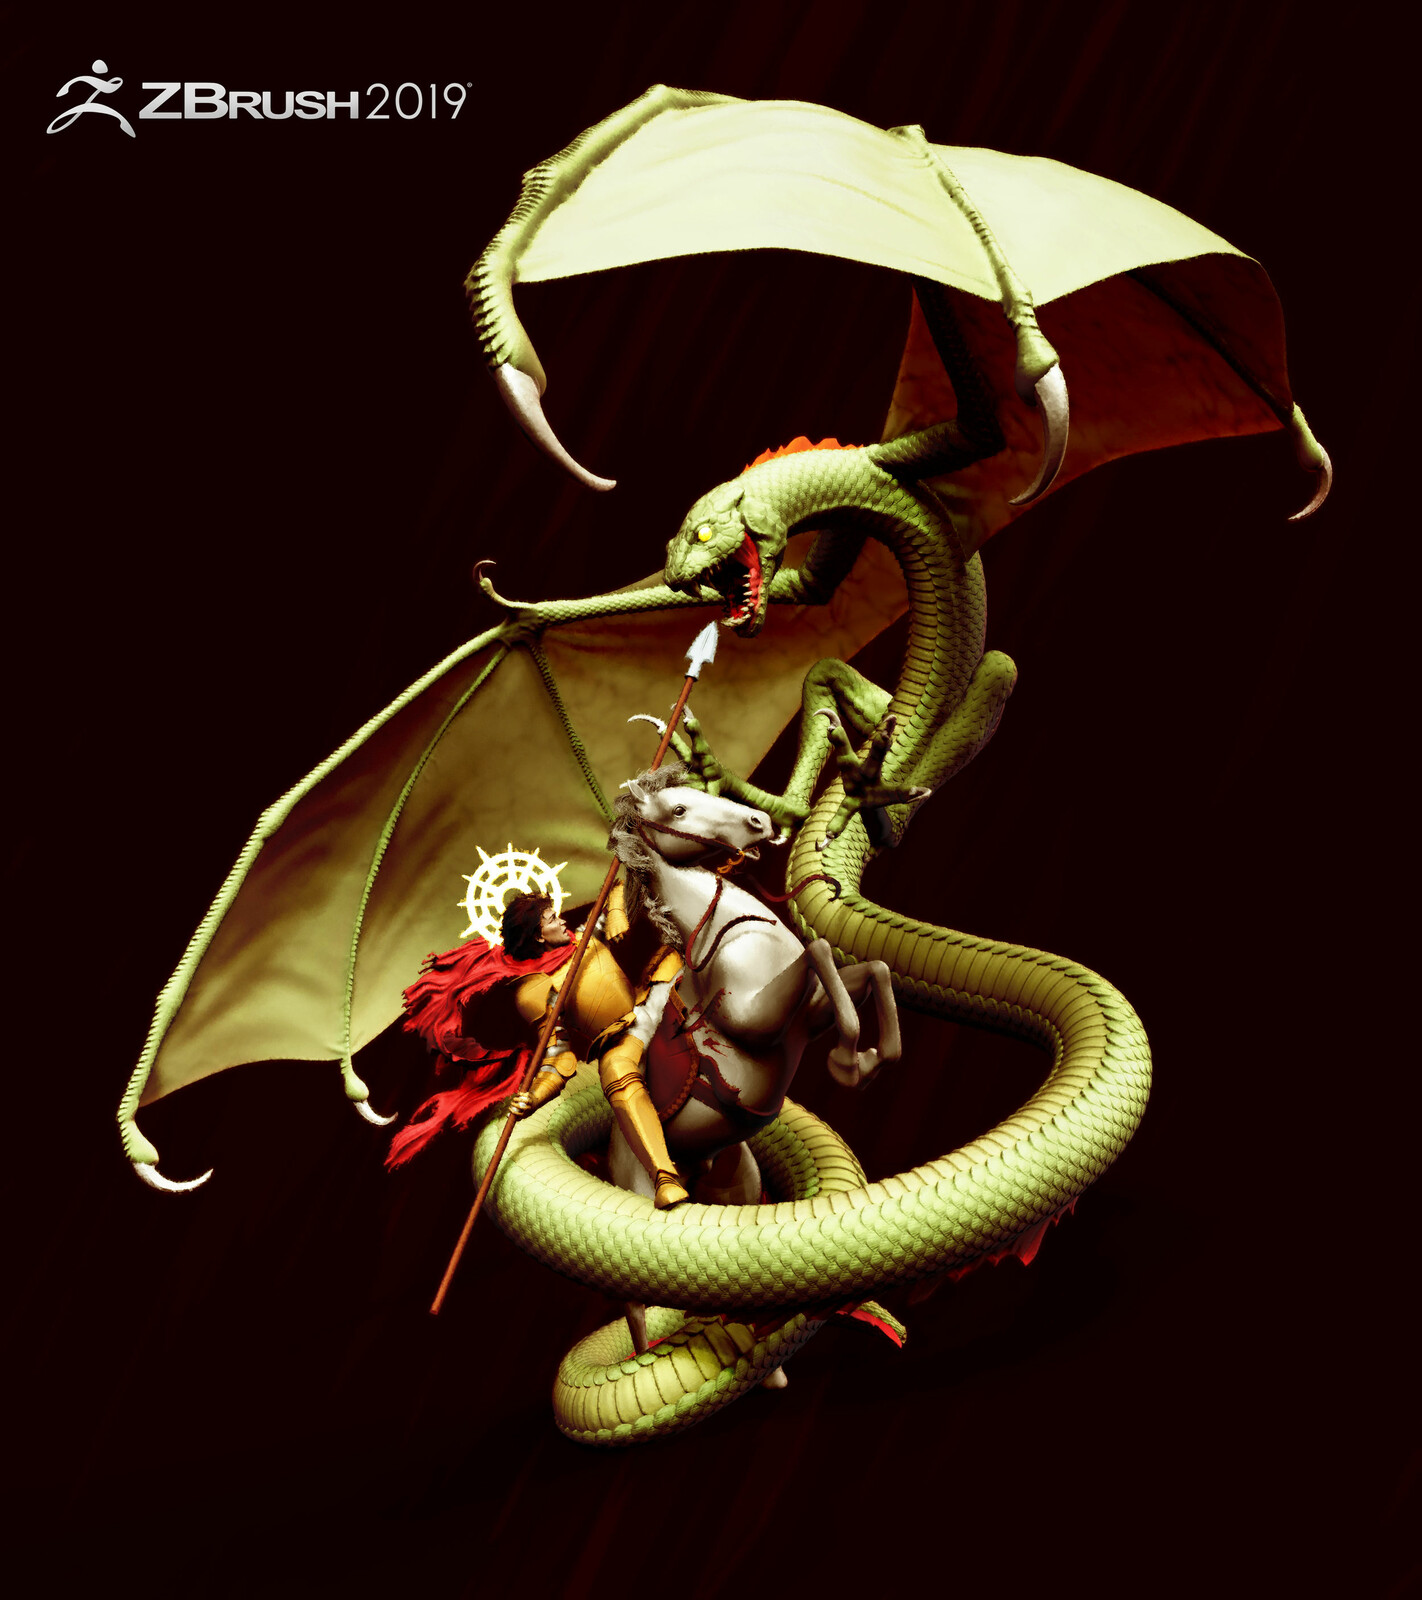 zbrush beta 2019. The last blow. Saint George and the dragon